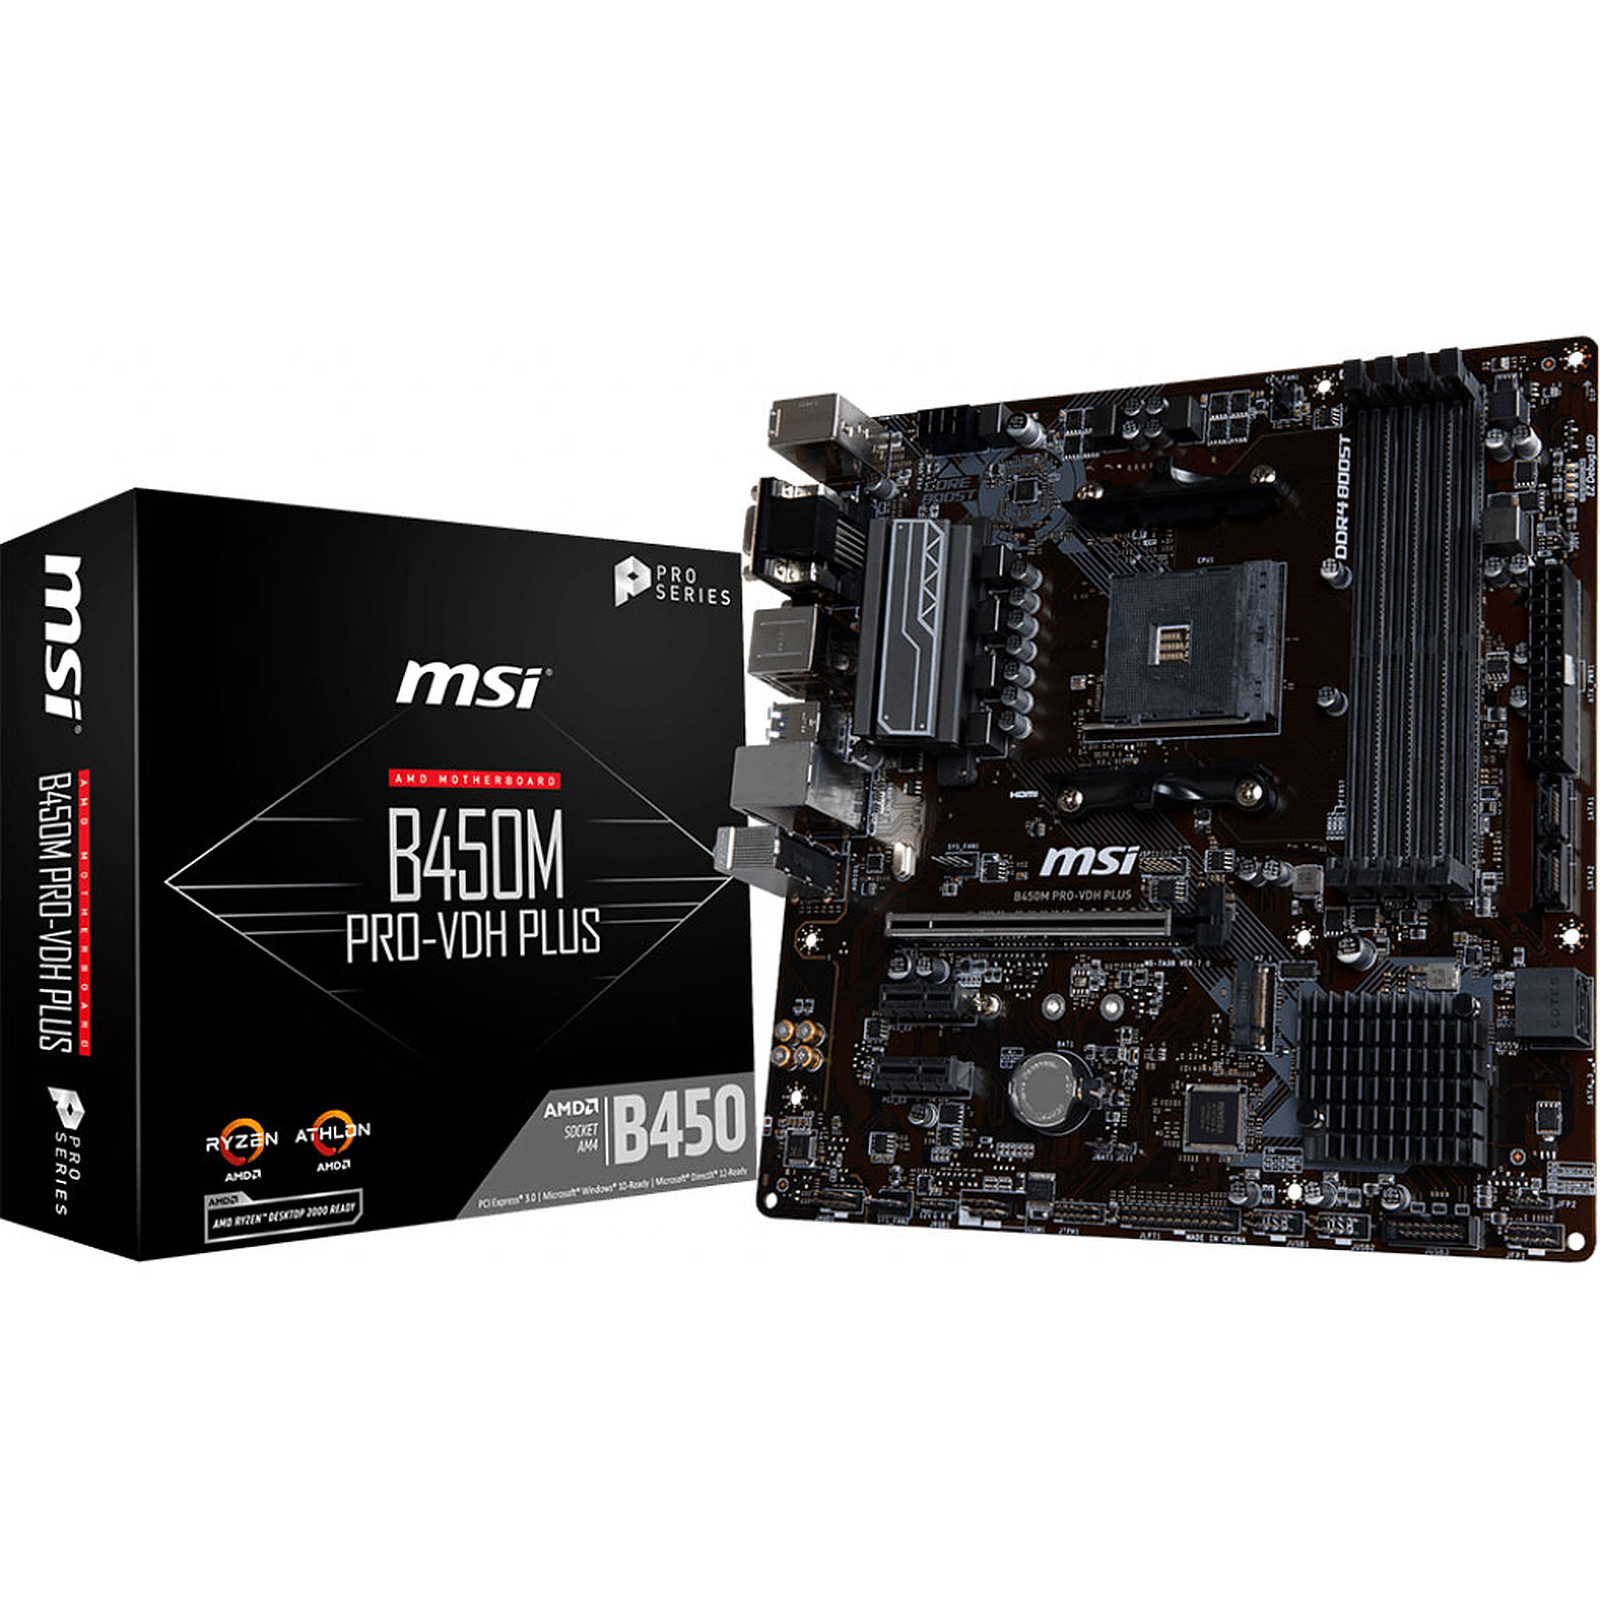 Carte mère MSI B450M PRO-VDH PLUS Socket AM4 (AMD B450) mATX, informatique ile de la Réunion 974